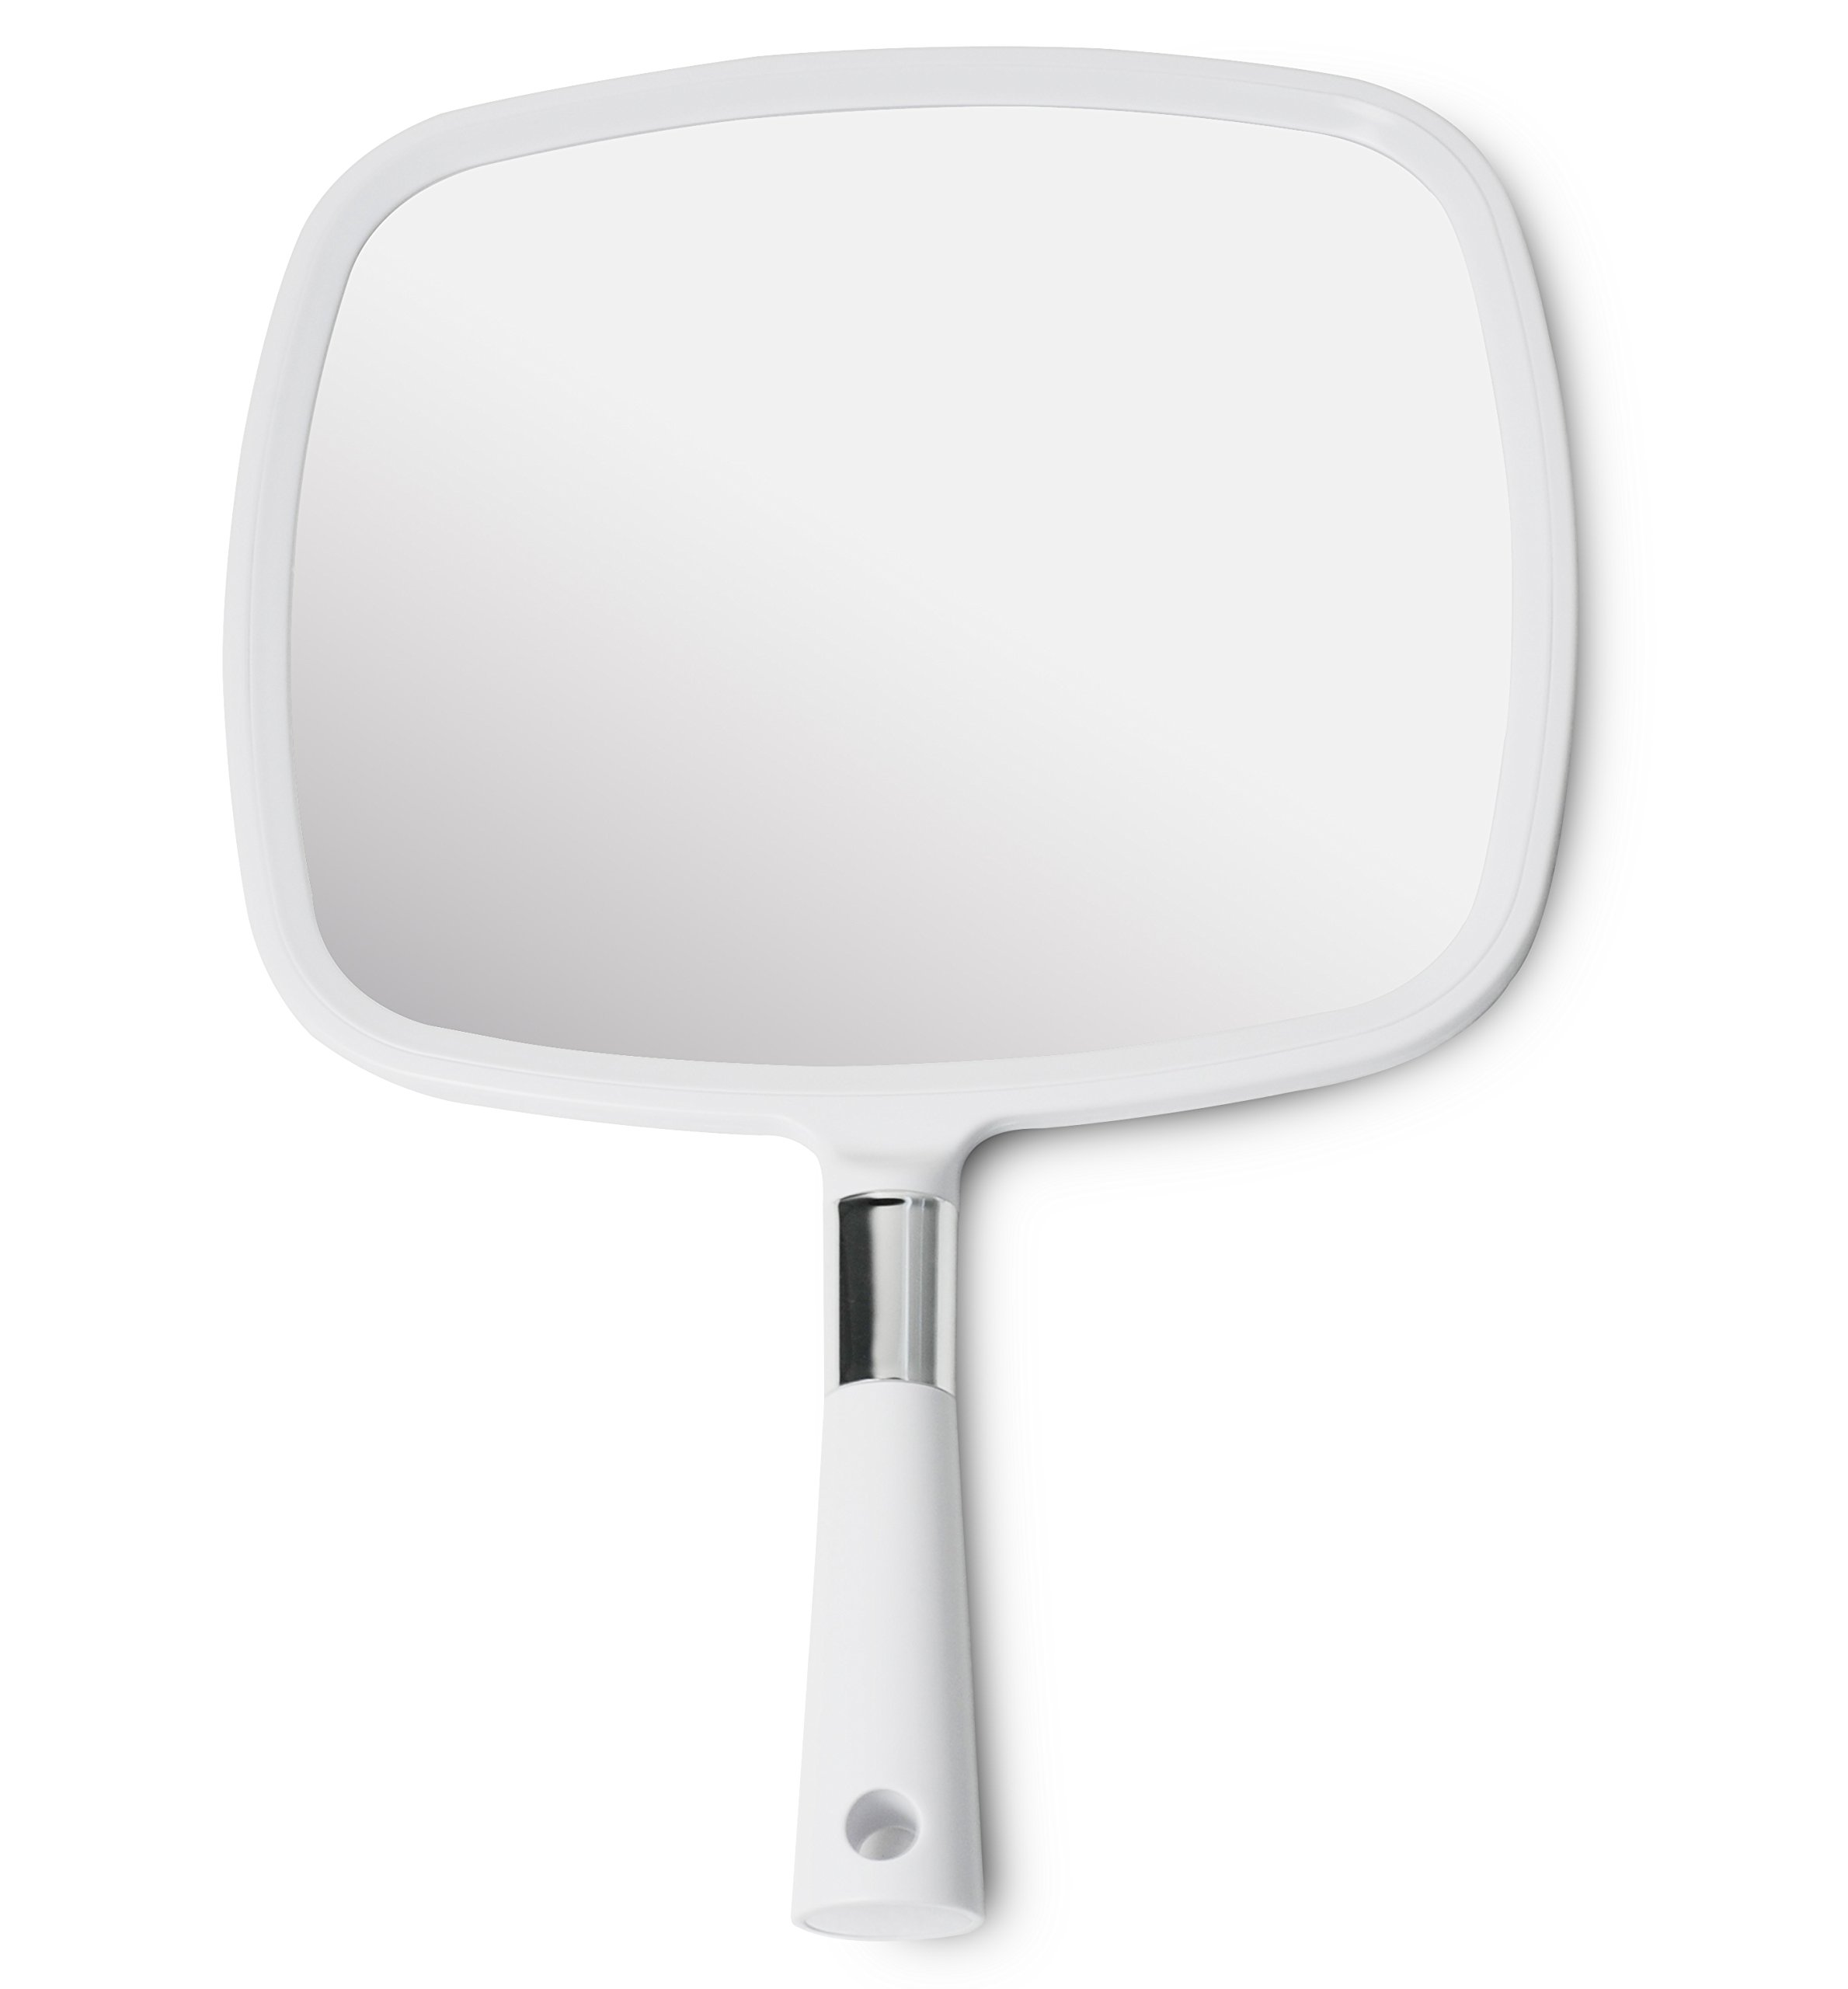 Mirrorvana Large & Comfy Hand Held Mirror with Handle (2018 Salon Model in White)